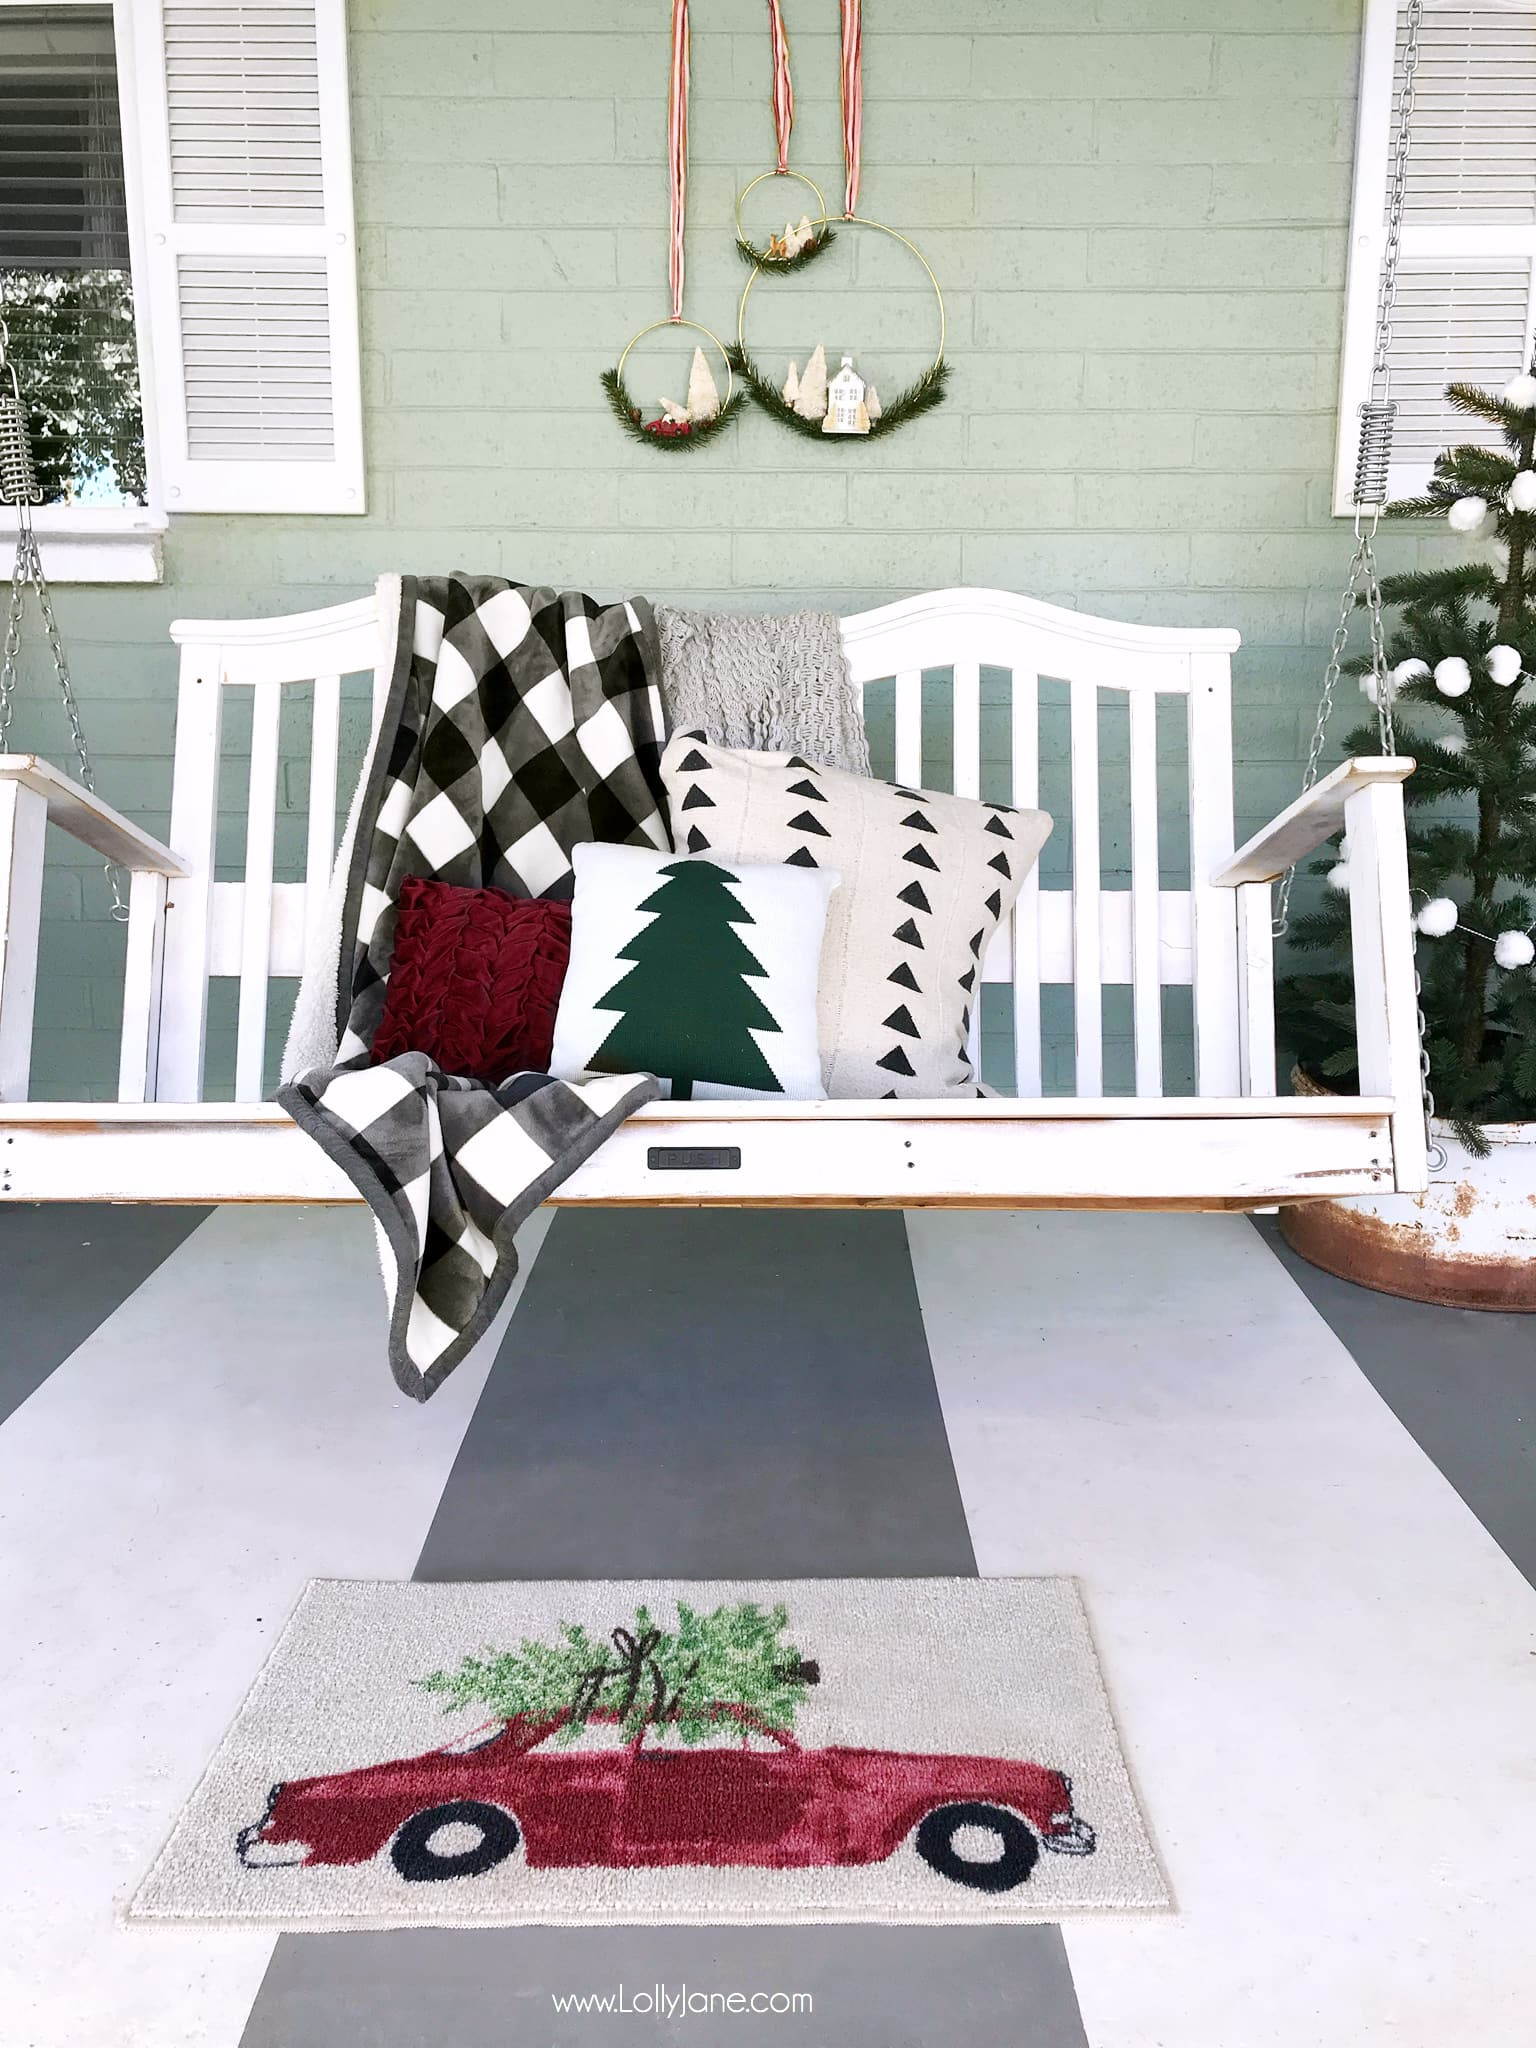 This Christmas porch is just simple and pretty! Mix handmade decor with store bought to make it pop! Love those bottle brush tree wreaths!